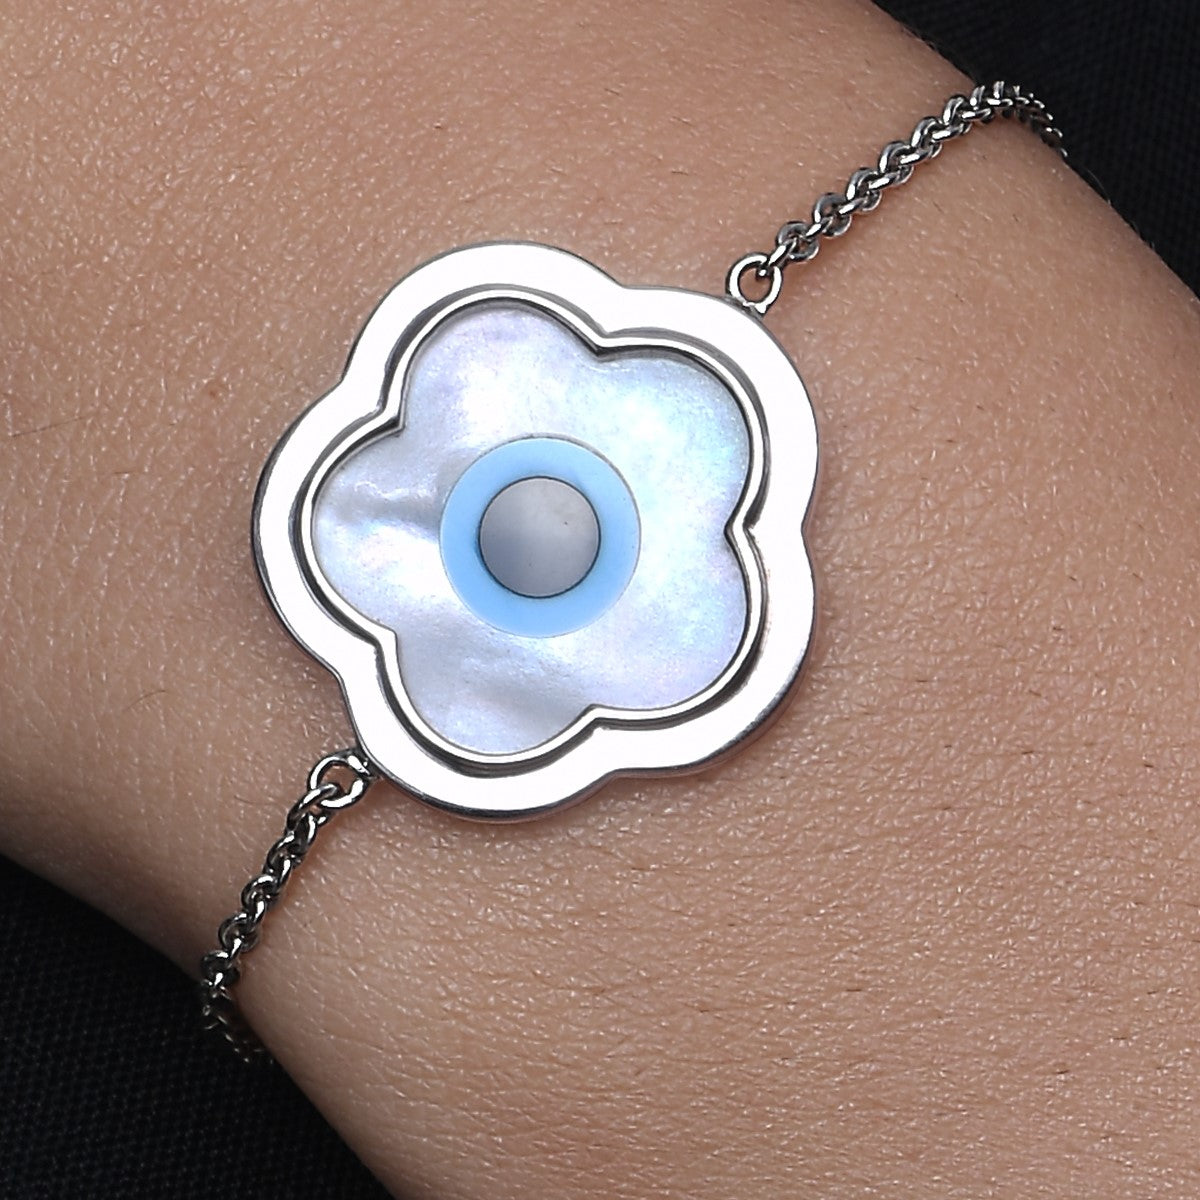 Large Flower Evil Eye Chain Bracelet